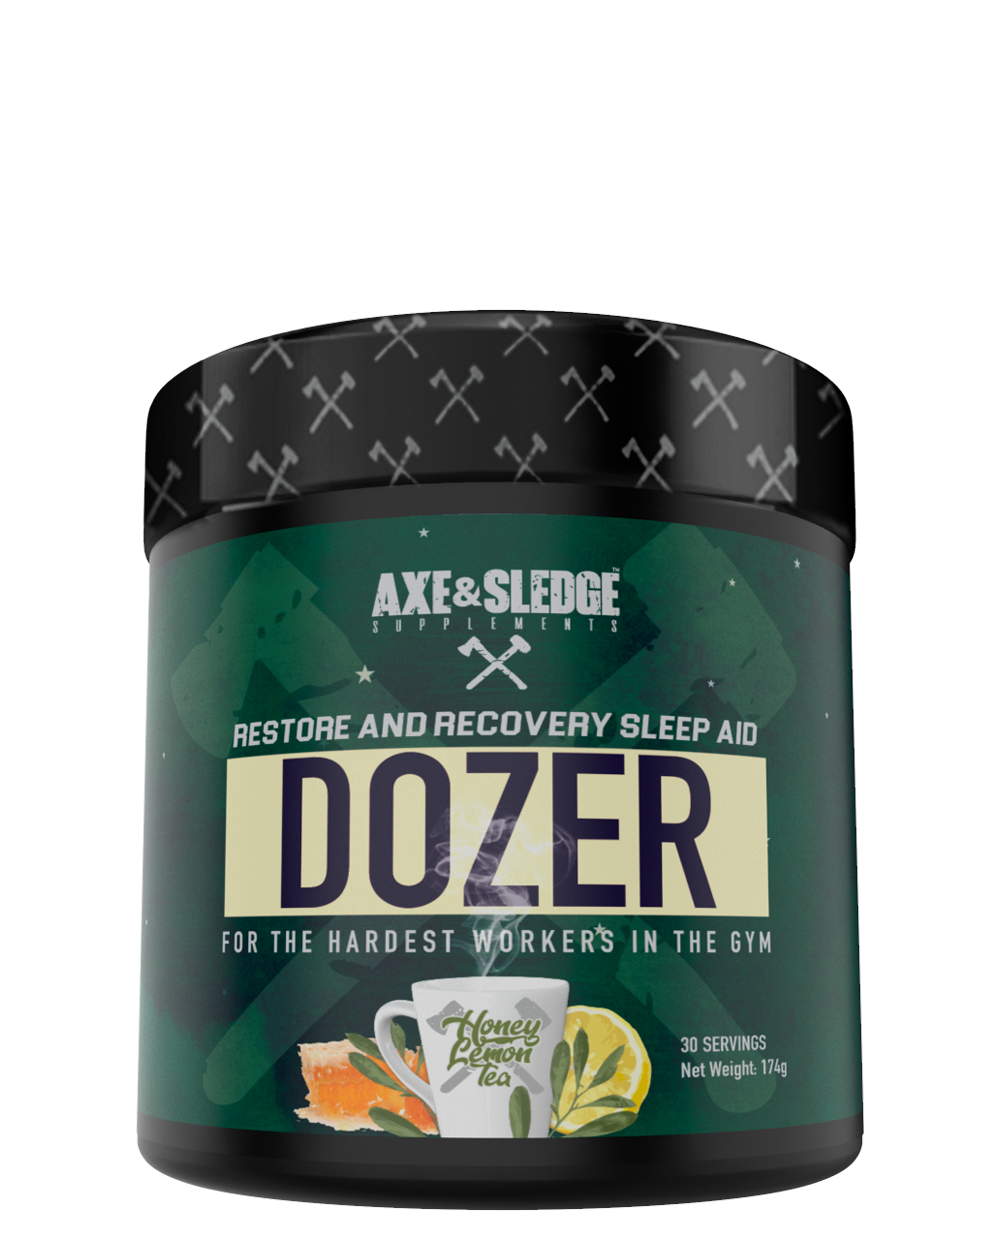 Axe & Sledge DOZER - Honey Lemon Tea - Super Nutrition